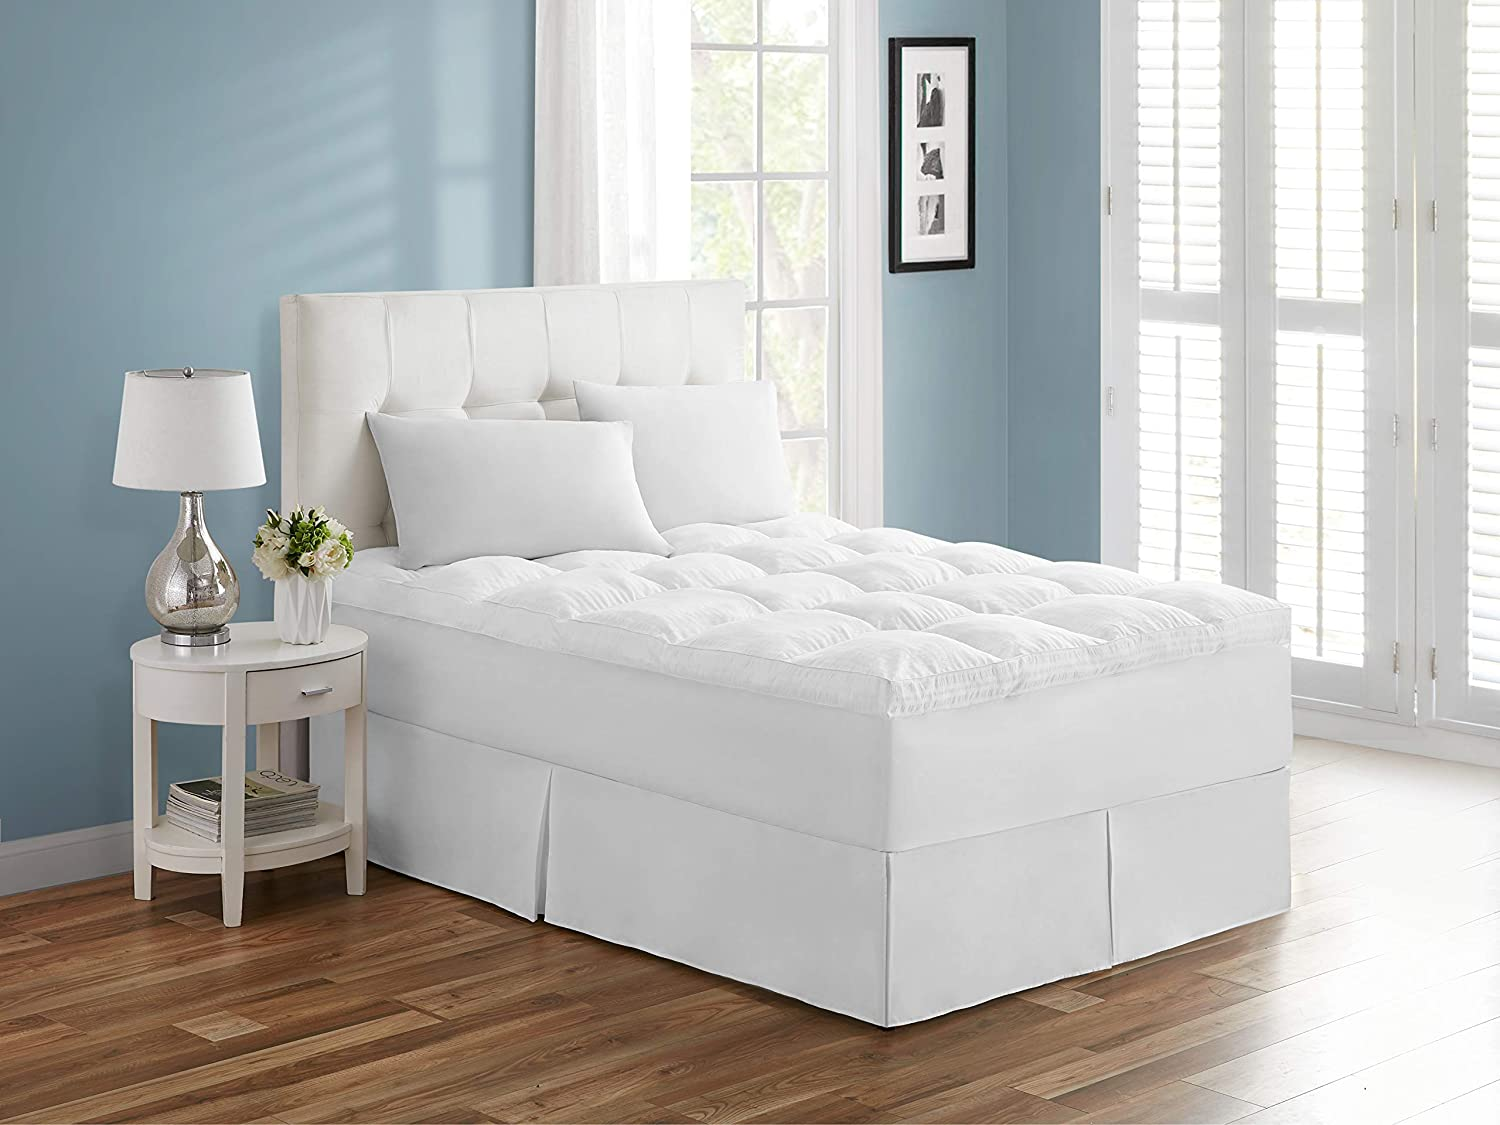 "Tahari Home Extra Thick Embossed Mattress Topper, Heavenly Soft Overfilled Down Alternative Filling Mattress Pad Breathable Hypoallergenic Fiberbed with 8-21"" Deep Pocket, 3"" Thick - Queen, 90x80"